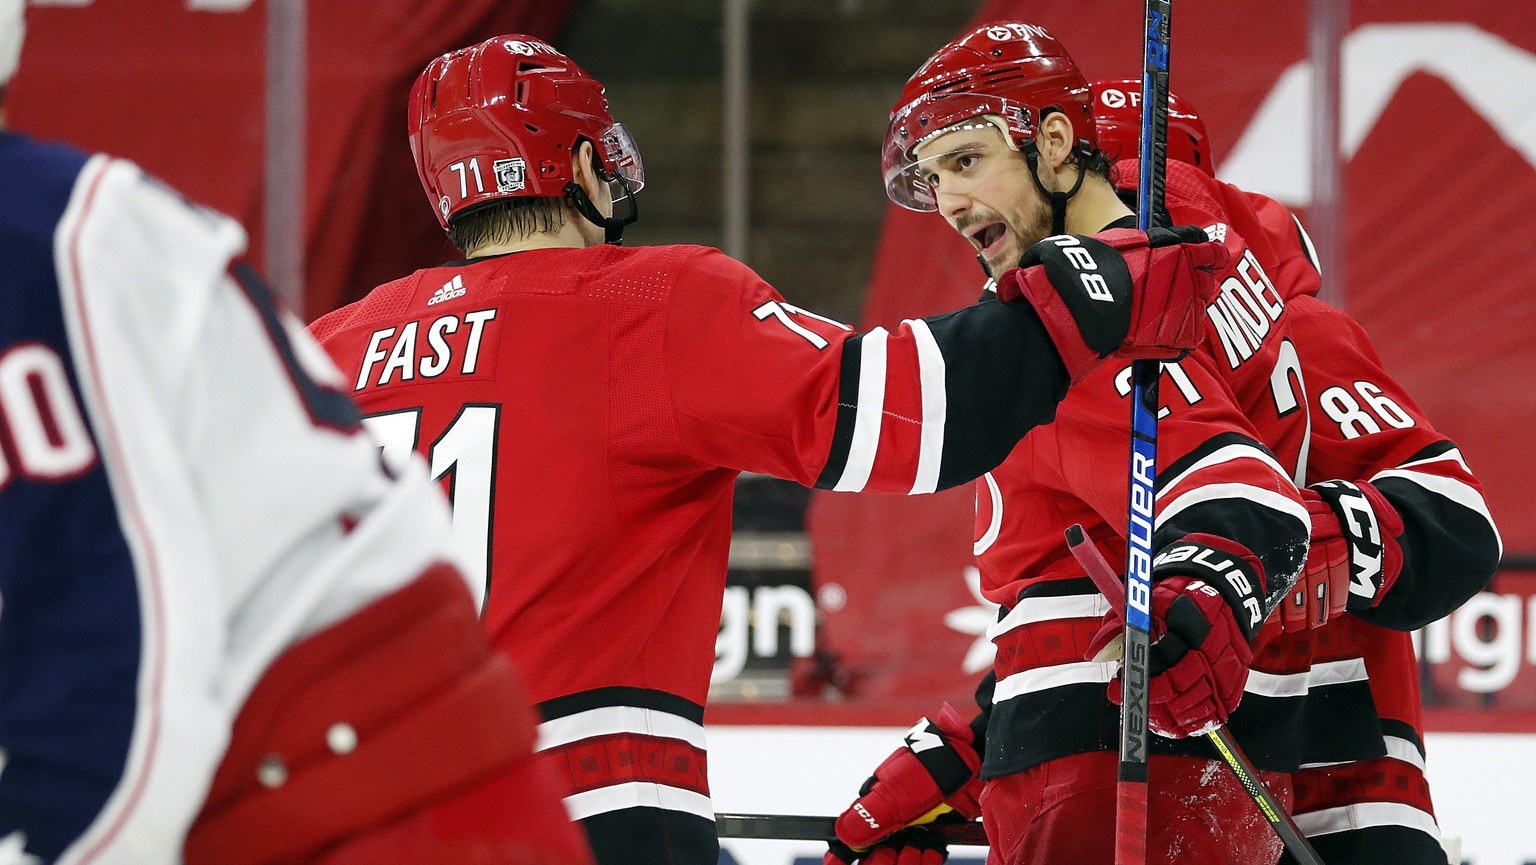 Carolina Hurricanes' Nino Niederreiter (21) celebrates his goal with teammate Teuvo Teravainen (86) and Jesper Fast (71) during the second period of an NHL hockey game against the Columbus Blue Jackets in Raleigh, N.C., Monday, Feb. 15, 2021. (AP Photo/Karl B DeBlaker)